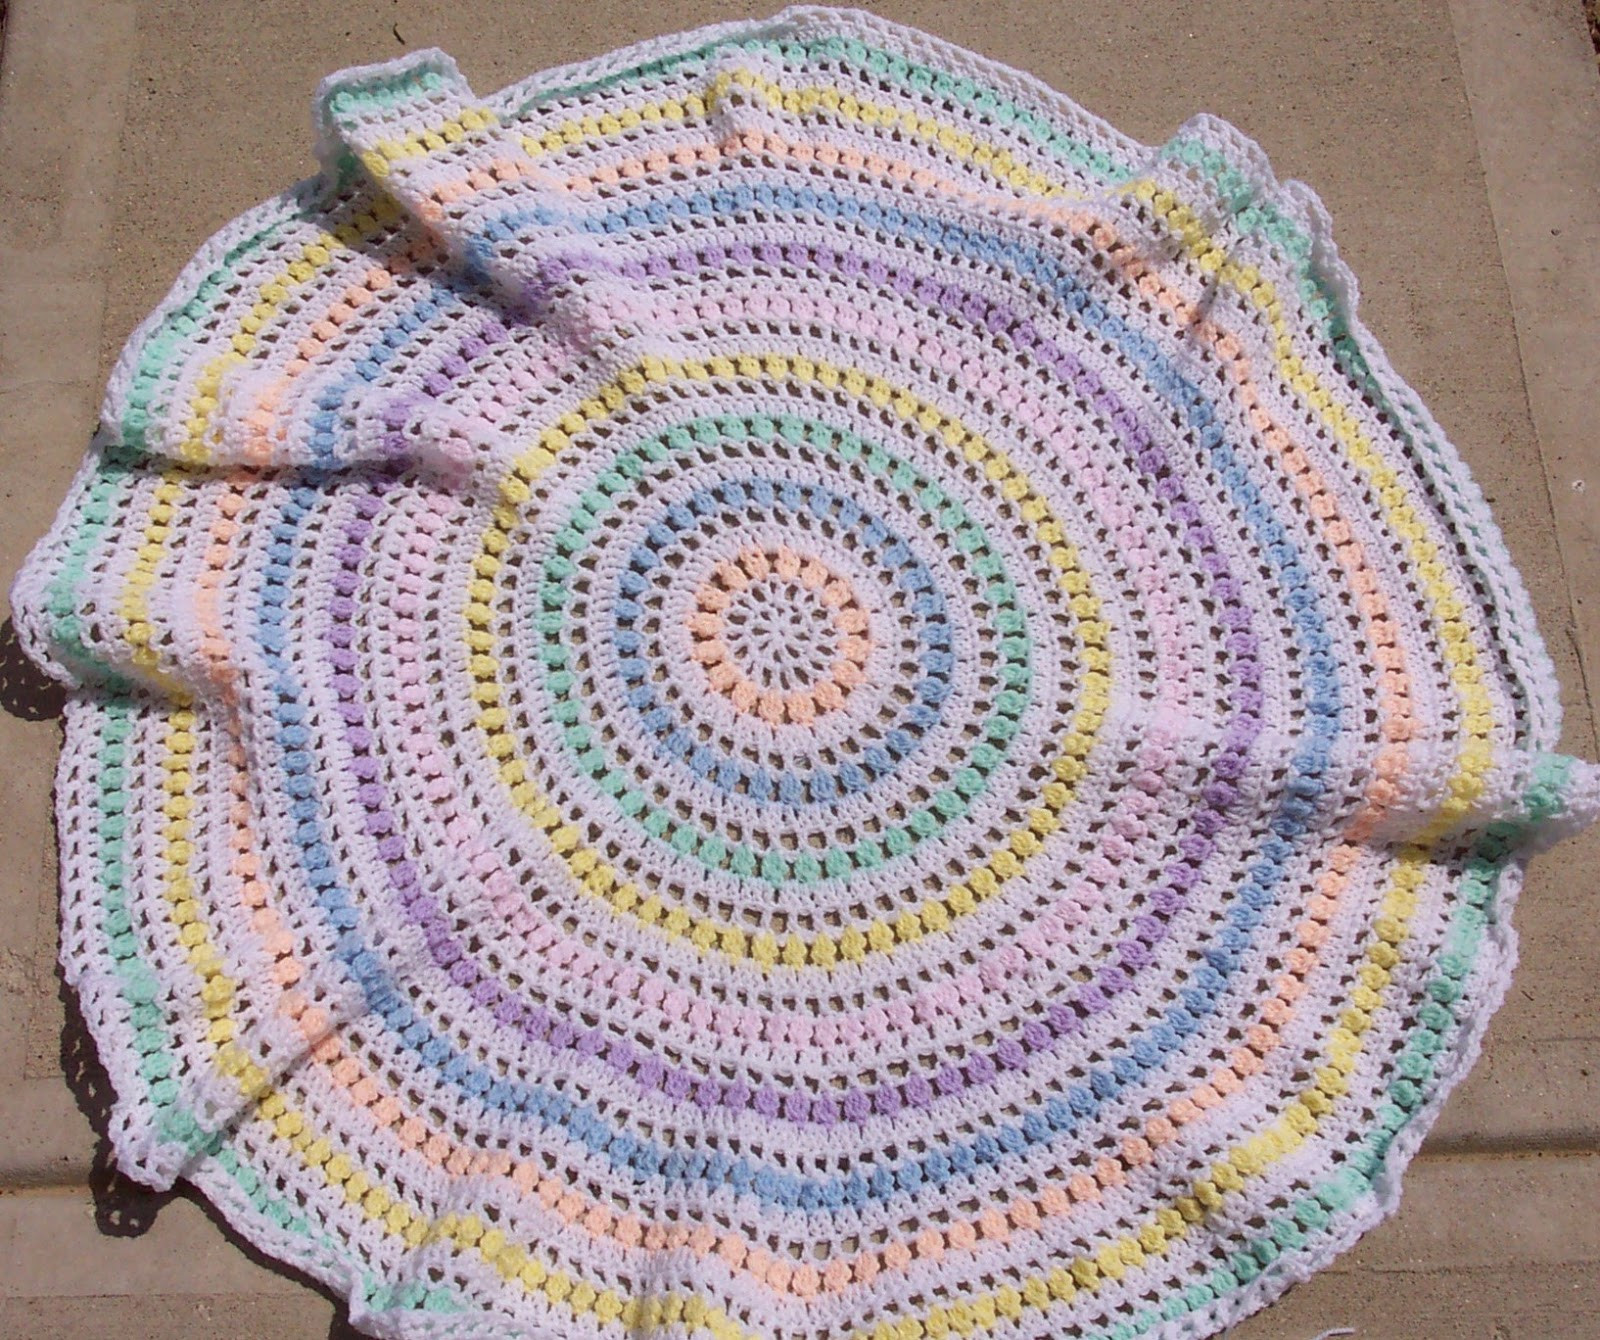 New Smoothfox Crochet and Knit Smoothfox S Spring Circle Crochet Circle Blanket Of Innovative 46 Models Crochet Circle Blanket